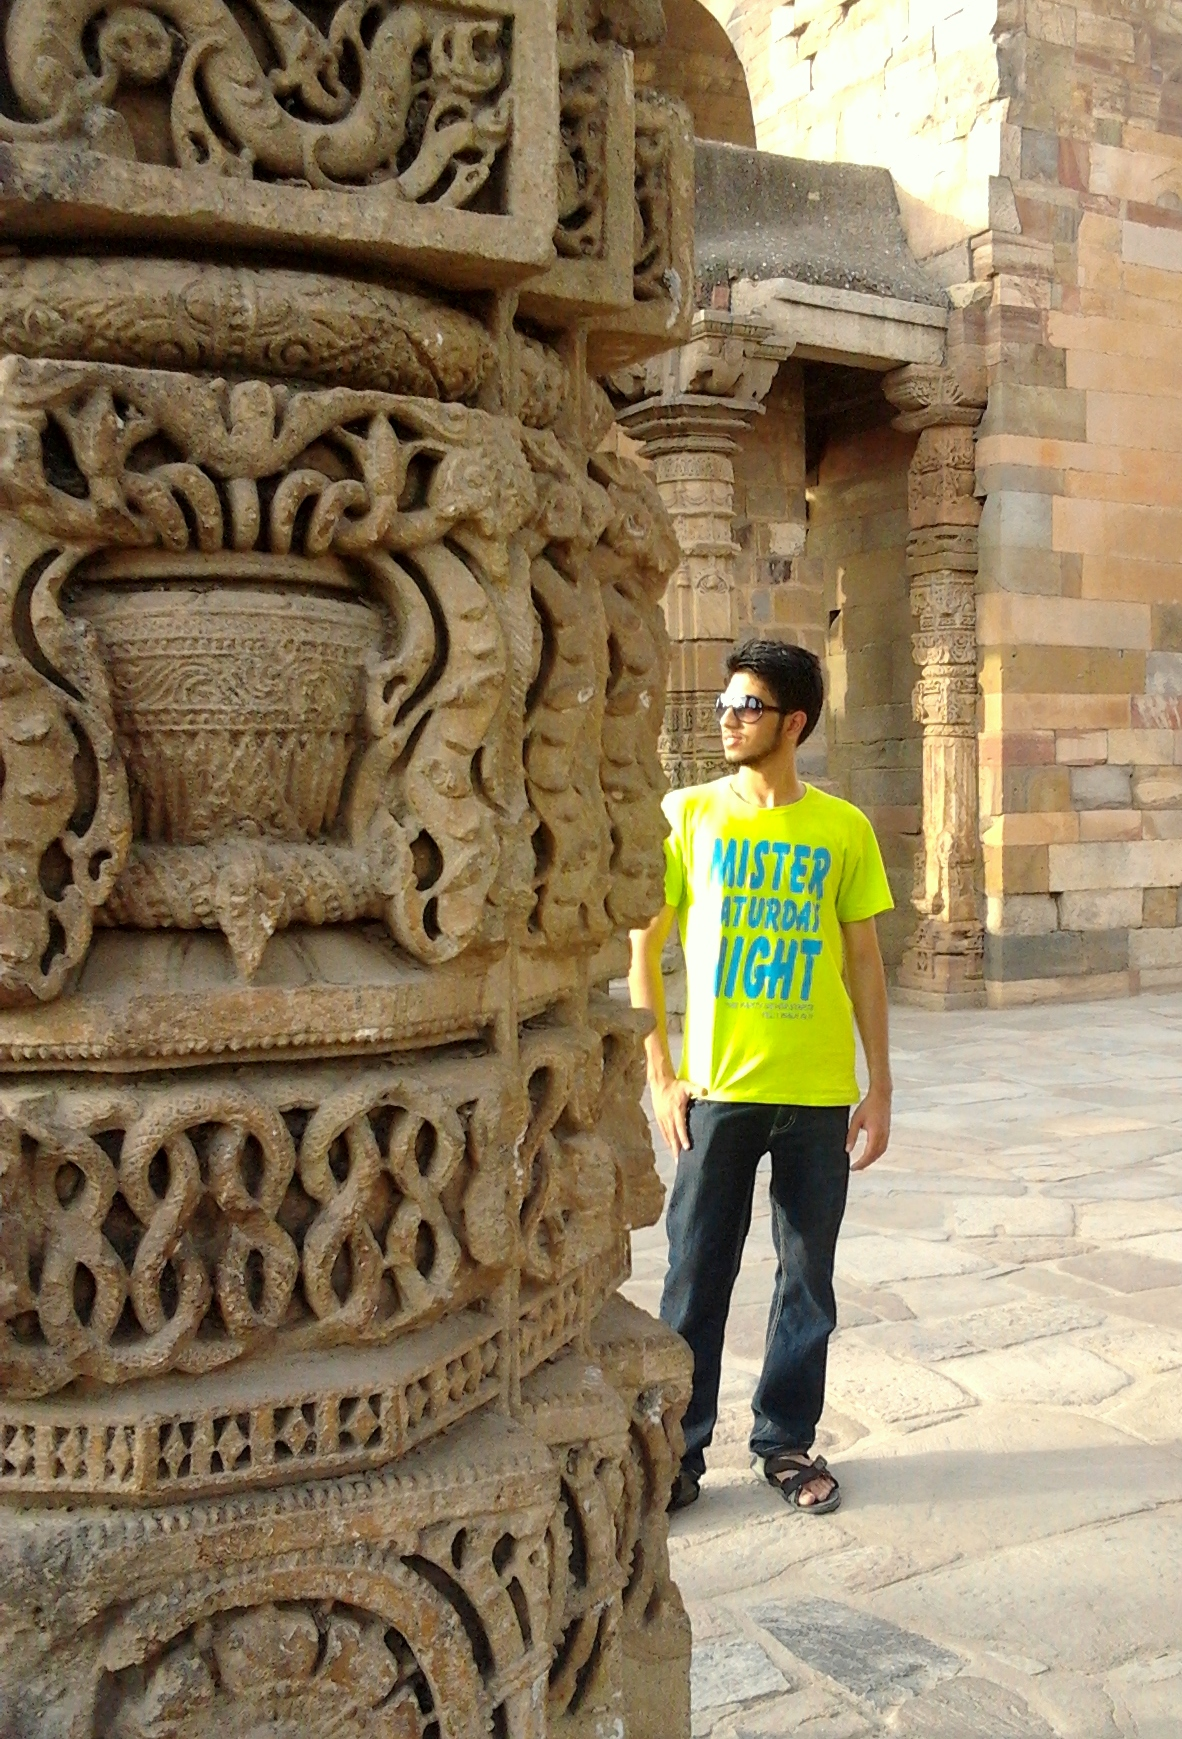 Qutab Minar was built in early 13th century. Qutbu'd-Din Aibak laid the foundation of Minar in 1199 AD in South Delhi (Mehrauli). It is a popular World Heritage Site, travellers across the world visit this place. I traveled via Delhi Metro, the closest Metro Station is Qutub Minar, however you need to take an auto rikshaw to reach the monument. My experience was great but its too hot out there. Thats how Delhi's summers are! Plan to visit in the evening. The timings are as follows: 6:00 AM - 6:00 PM